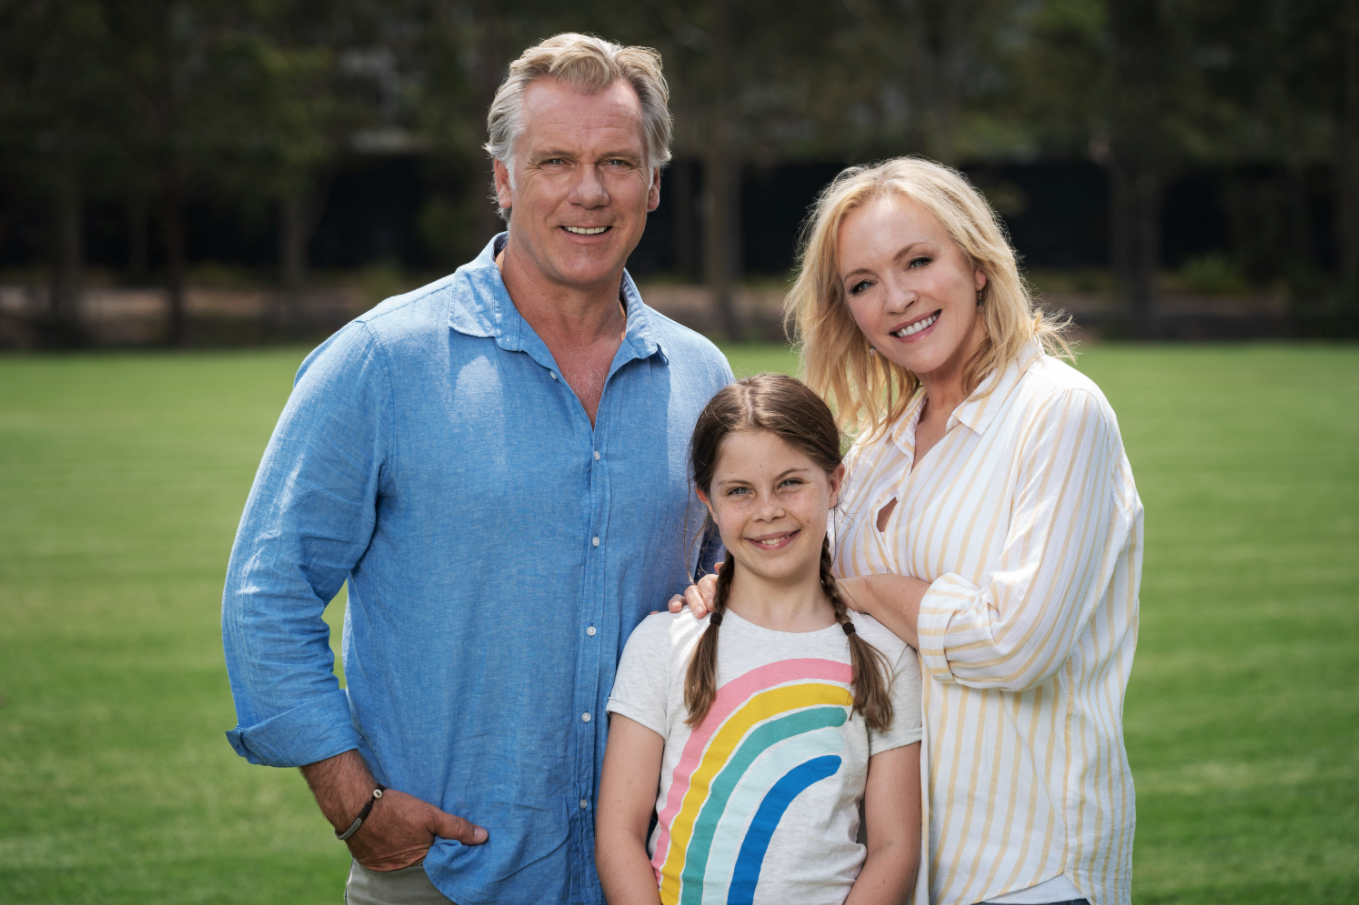 Erik Thomson, Willow Spencer and Rebecca Gibney posing for a family photo together